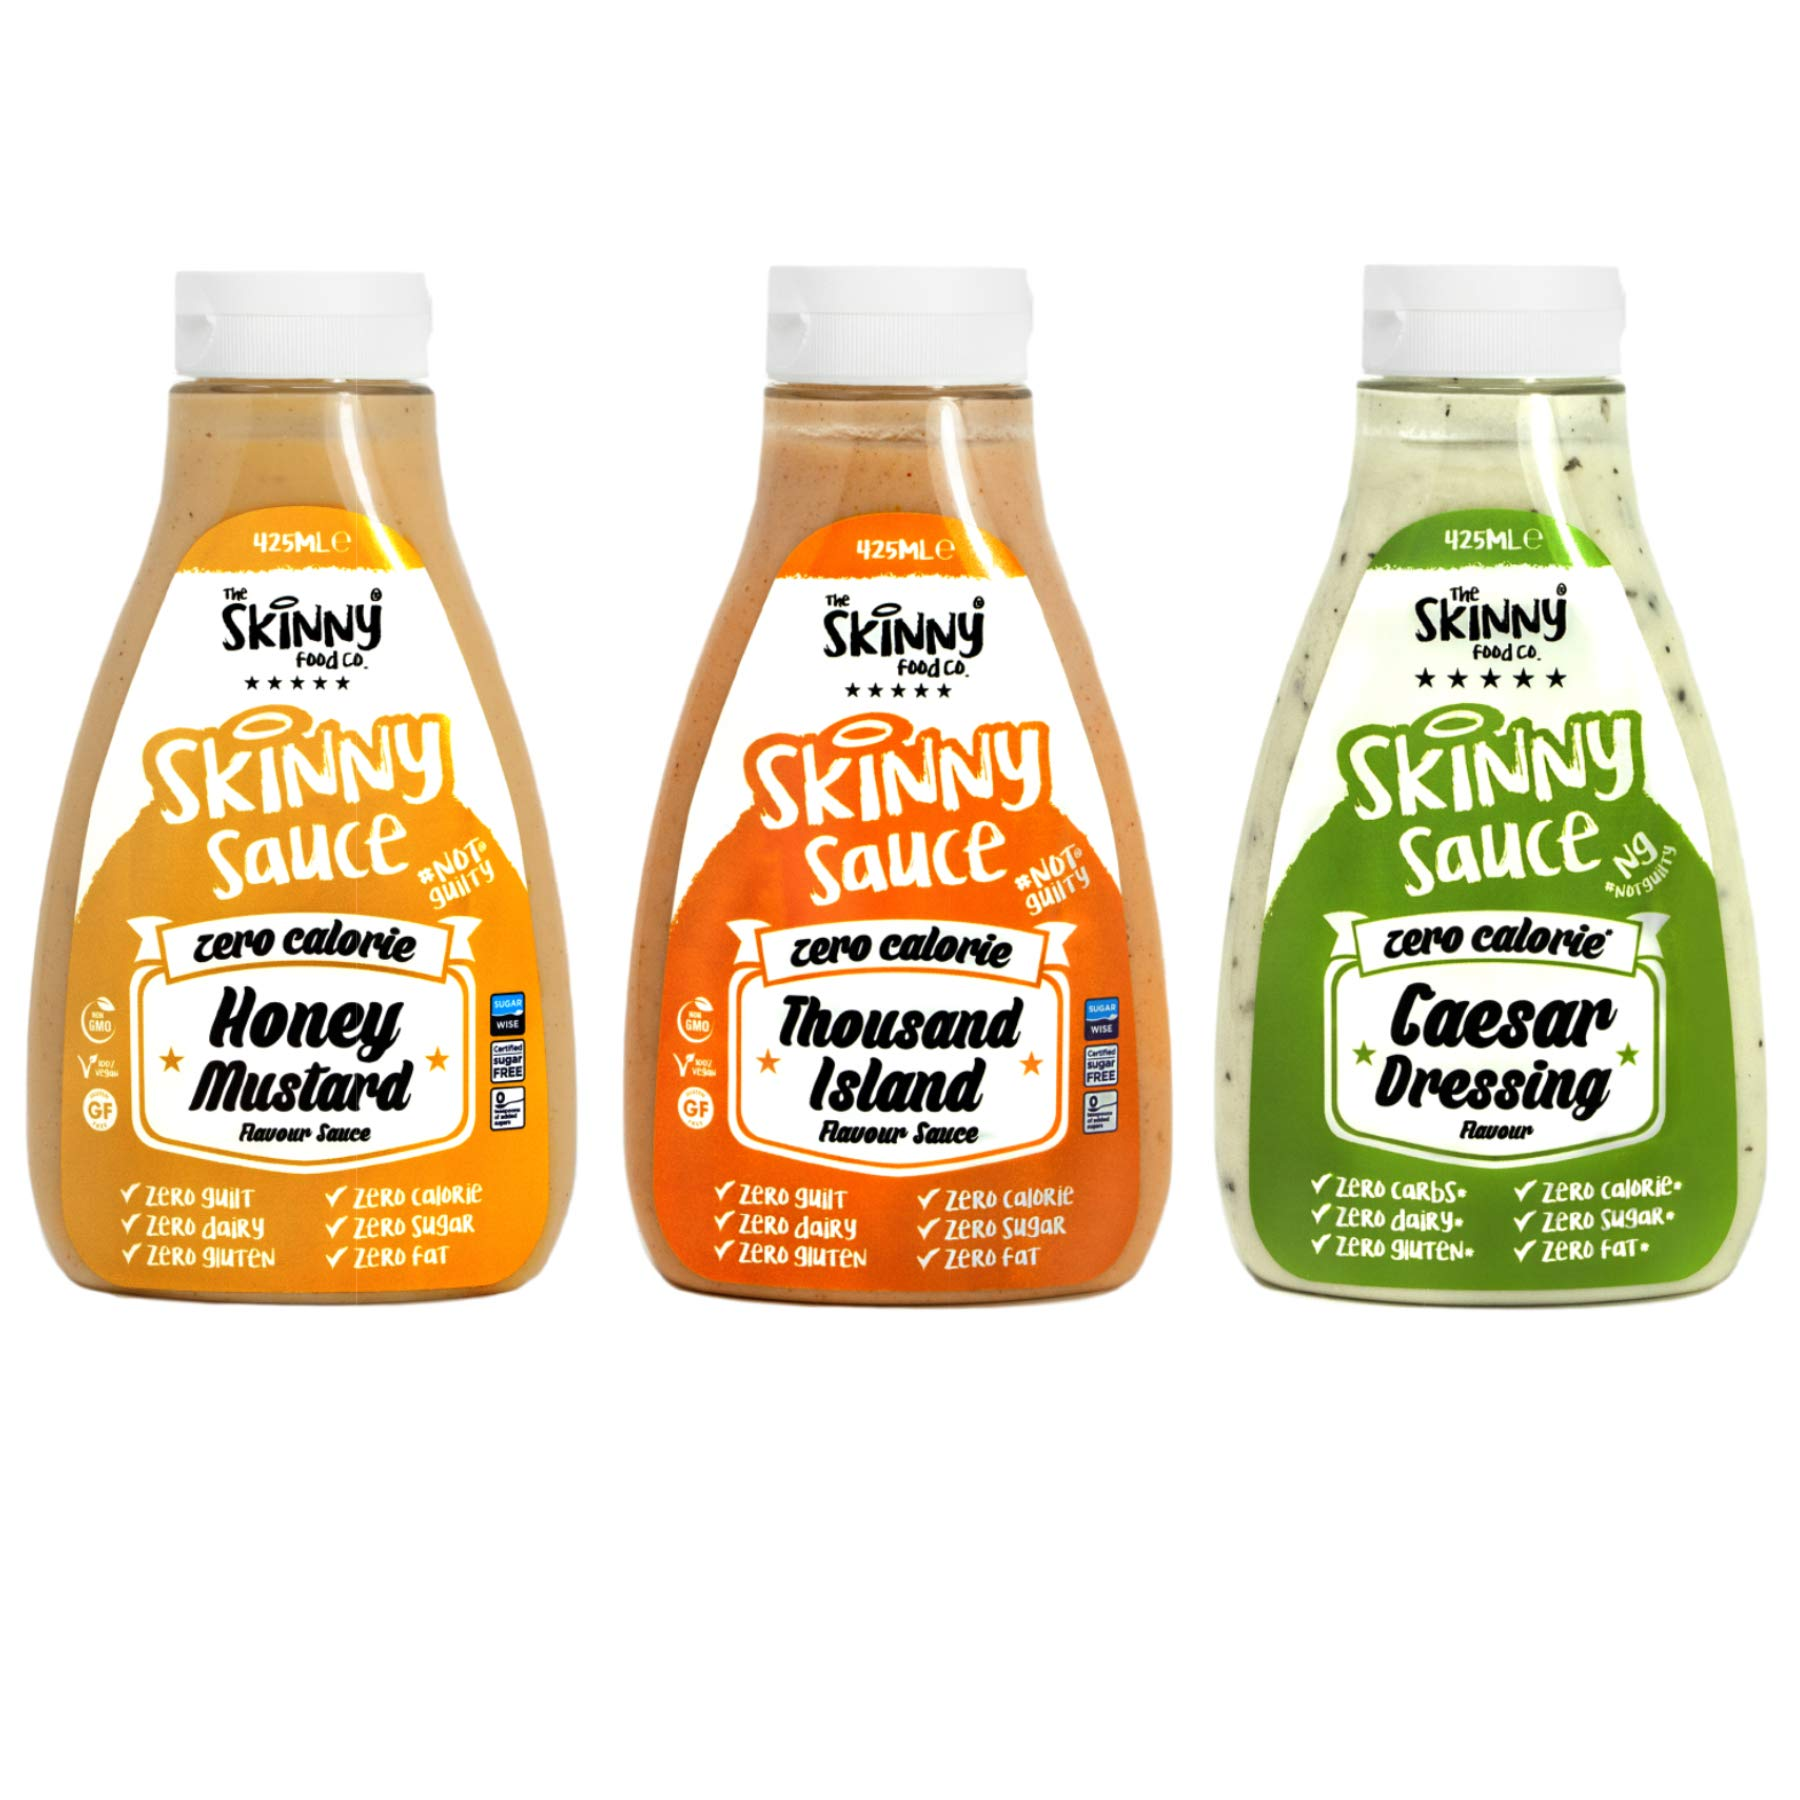 Skinny Foods Honey Mustard, Thousand Island & Caesar Salad Dressings Set of 3 Condiment Sauces Sugar Free Zero Calories by The Skinny Food Co